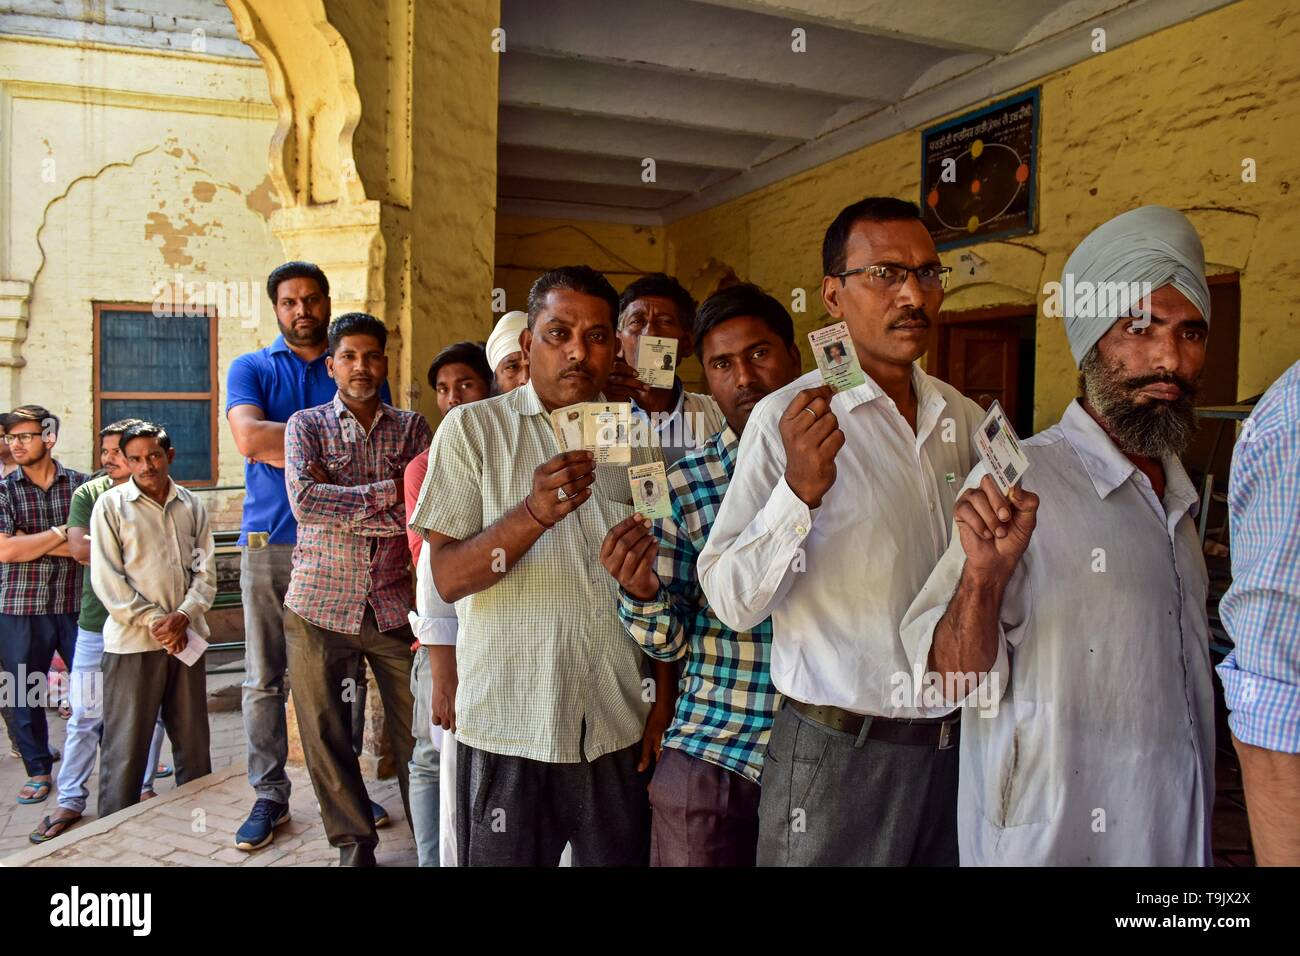 Indian voters seen showing their identity cards as they queue to cast their vote at a polling station during the final phase of India's general election in Patiala district of Punjab. Voting has begun for the final phase of Lok Sabha elections in Punjab, Bihar, West Bengal, Madhya Pradesh, Uttar Pradesh, Himachal Pradesh, Jharkhand and Chandigarh. Over 10.01 lakh voters will decide the fate of 918 candidates. The counting of votes will take place on May 23, officials said. - Stock Image